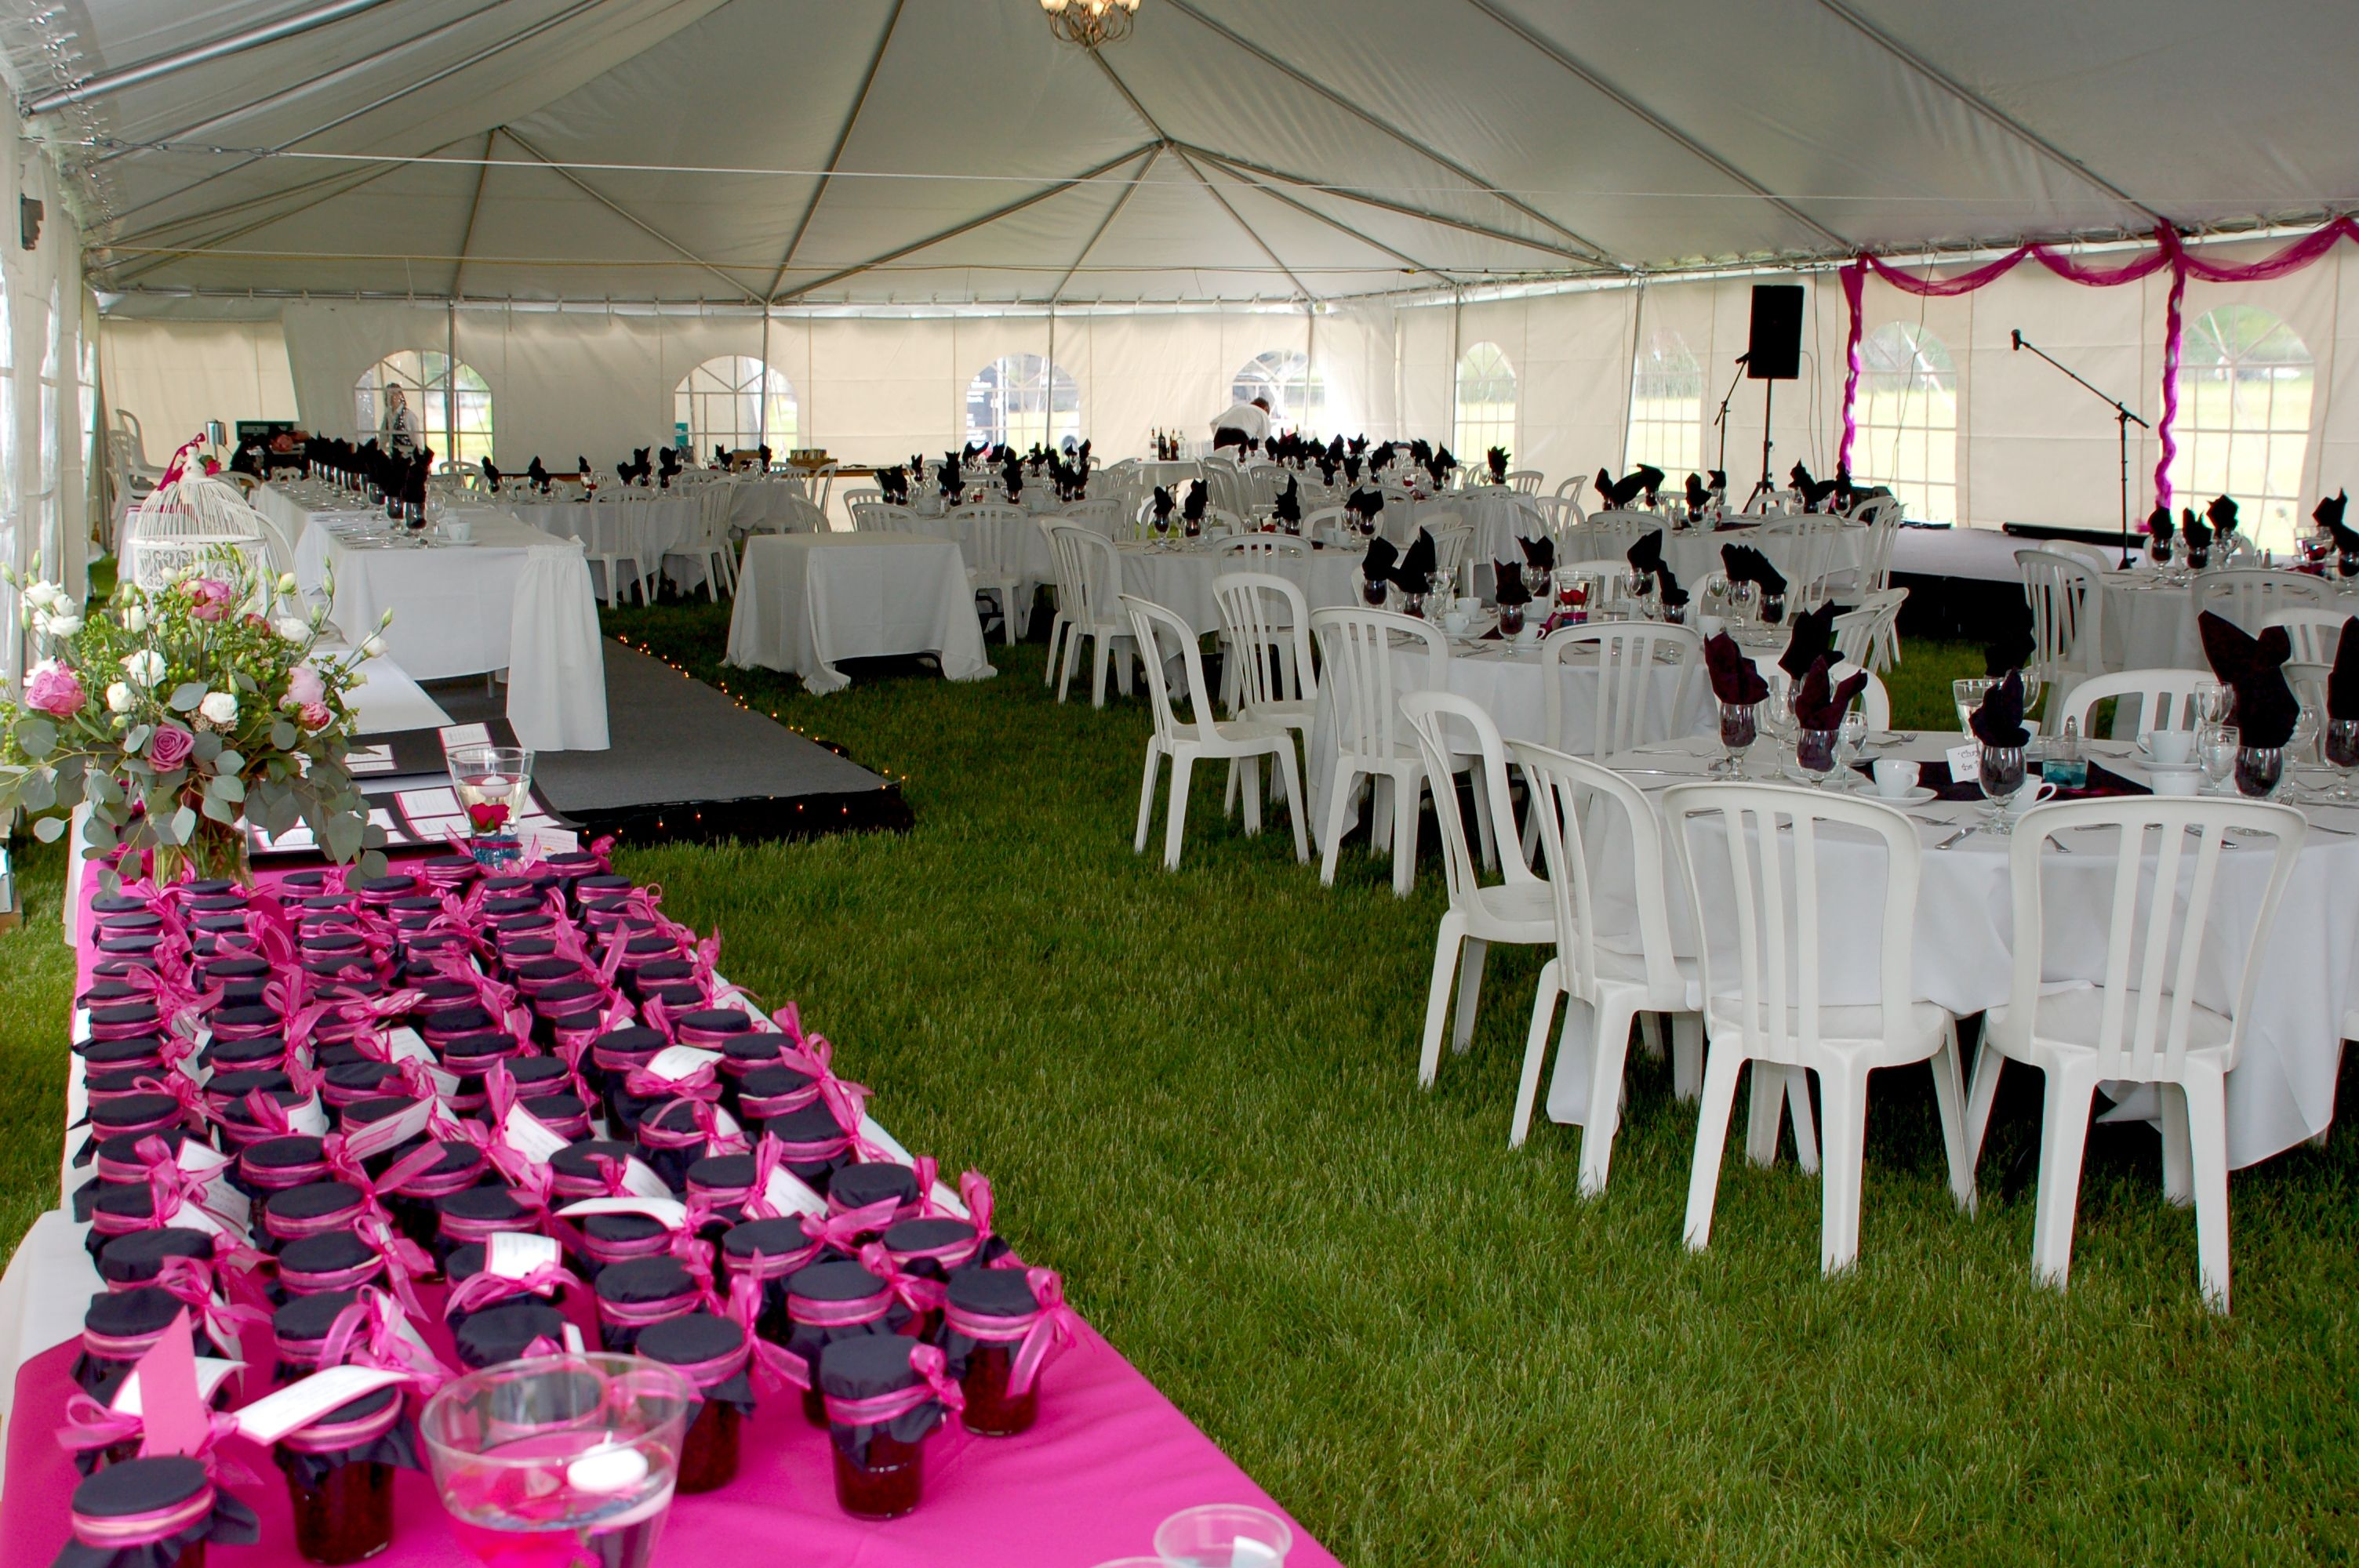 affordable wedding reception venues minnesota%0A Well designed wedding tents that are safe and proofed for all seasons  Get affordable  wedding tents for hire such as stretch tents  high peak tents and many